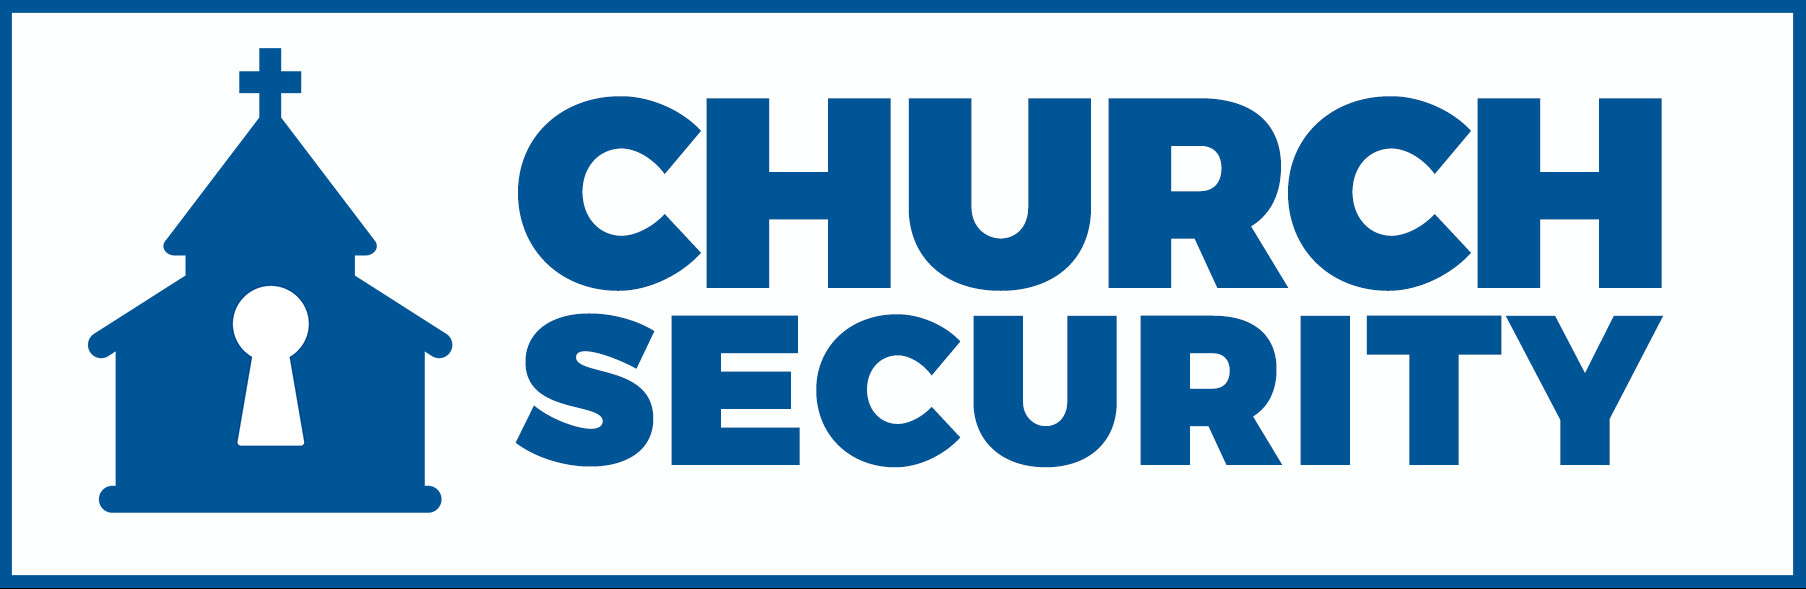 Church Security assessment form Elegant Church Security